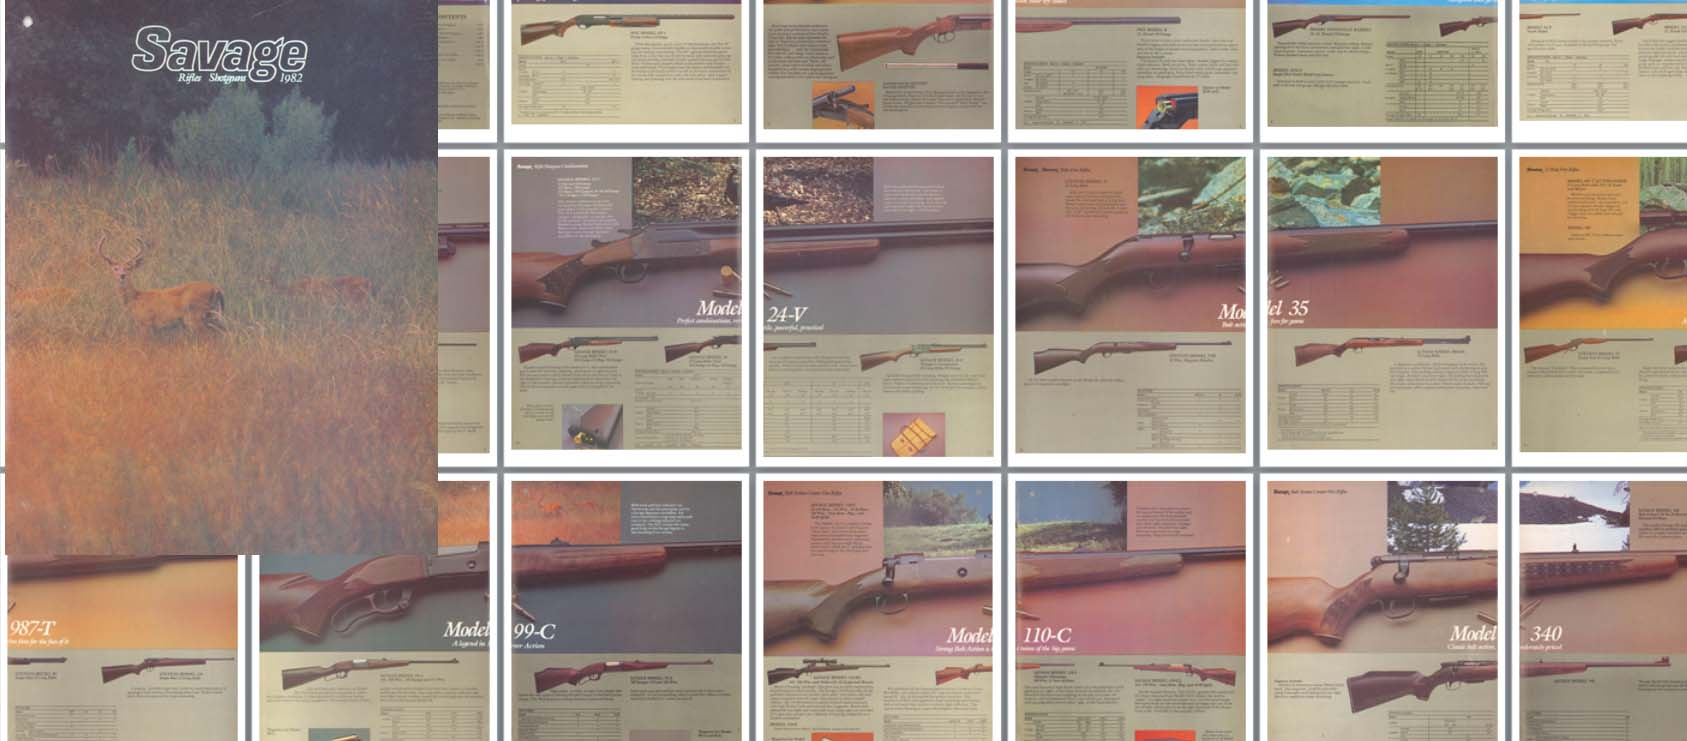 Savage 1982 Rifles & Shotguns